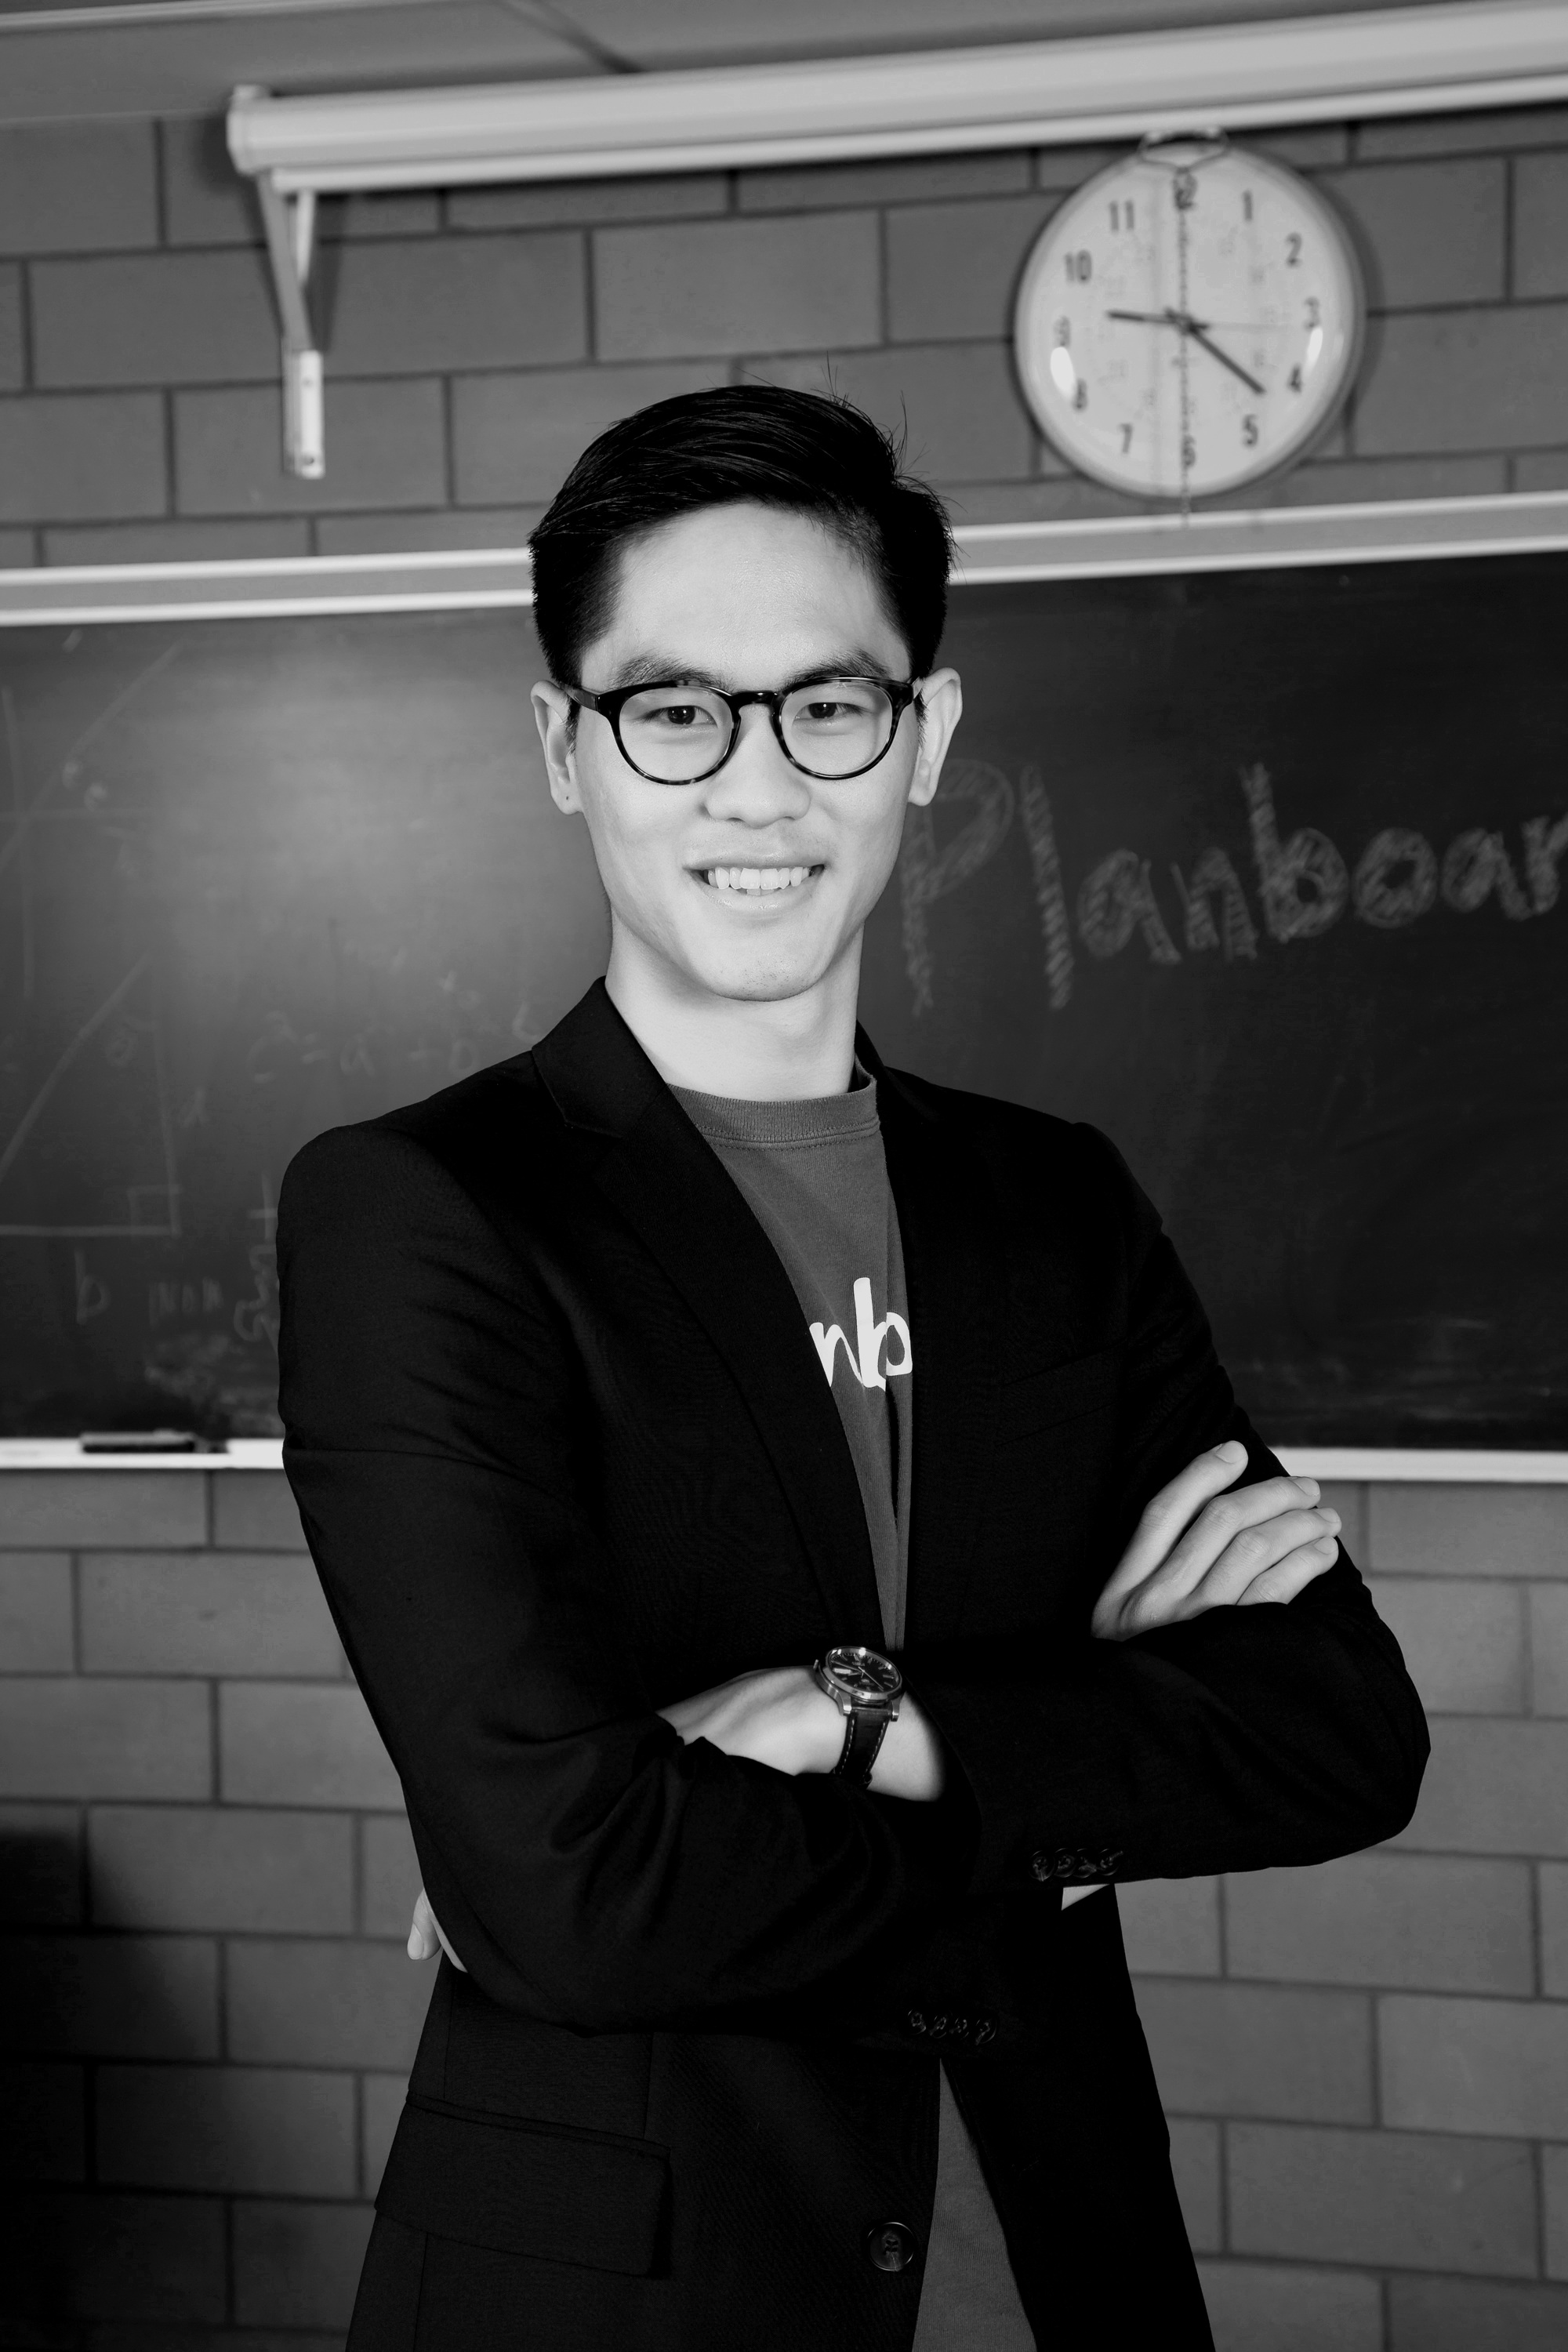 William Zhou is the CEO of Chalk, a K-12 education company that helps schools achieve data-driven decision making in curriculum, instruction, and assessment. Zhou has been passionate about entrepreneurship from a young age, founding his first company in high school. He launched his first Internet business in 2010, which he sold at the age 18 during his first year of computer science at the University of Waterloo. To pursue the bigger challenge of changing education, Zhou founded Chalk to create data-driven education. Forbes named Zhou top 30 under 30. From small, independent schools to large, national school networks, Chalk is behind the academic strategies influencing millions of students.